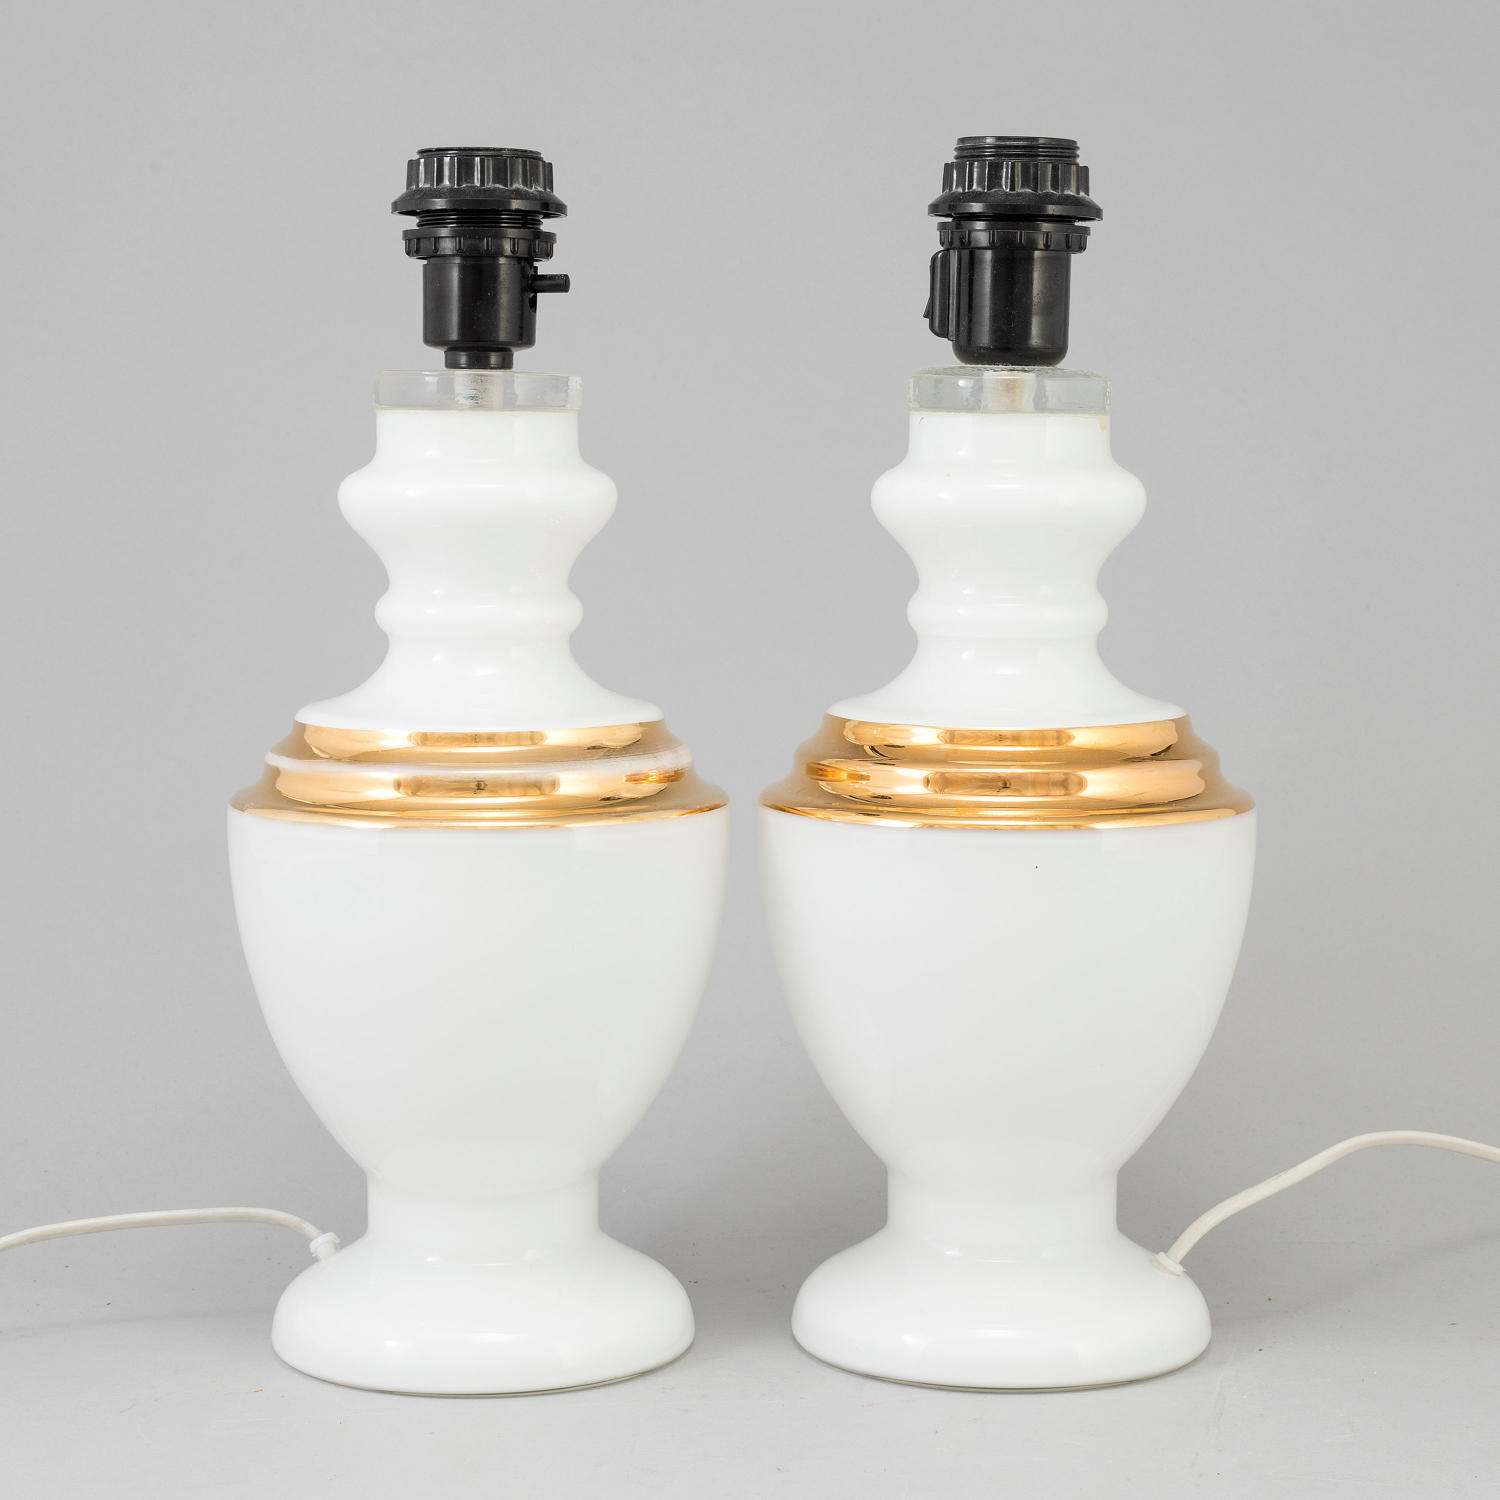 A pair of white opaline glass table lamps